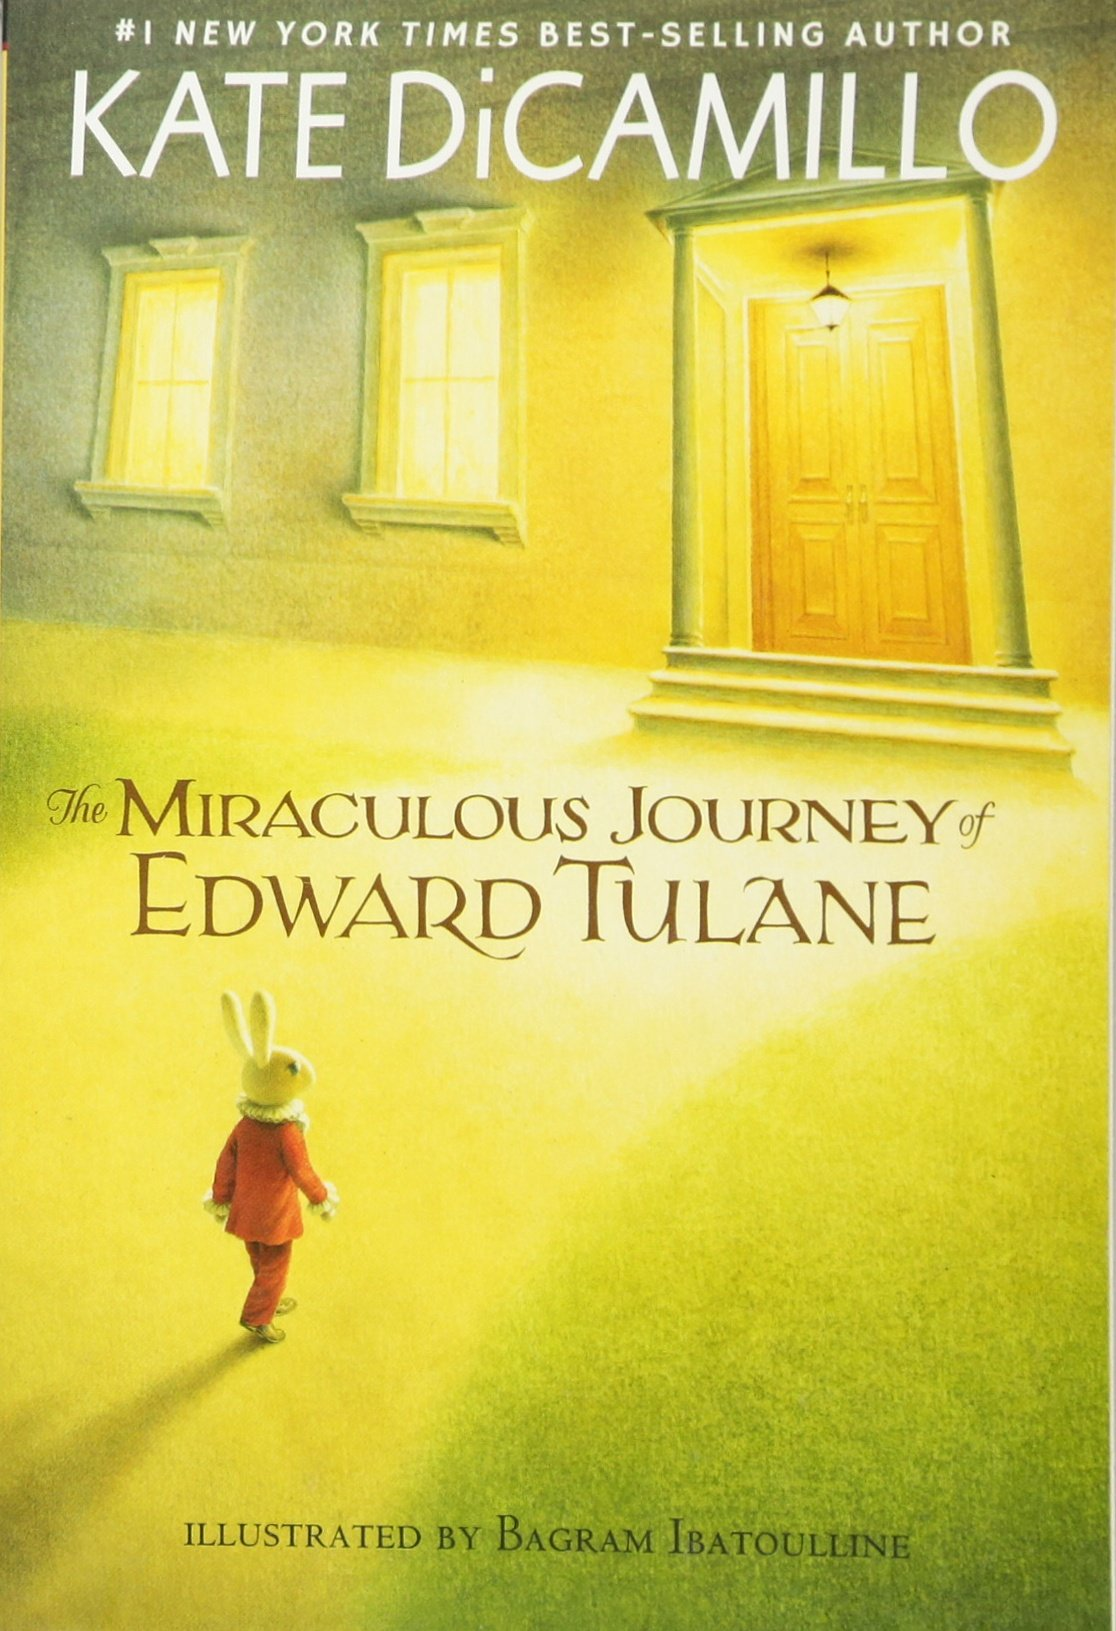 Review of winn dixie free appliances - The Miraculous Journey Of Edward Tulane Kate Dicamillo Bagram Ibatoulline 9780763680909 Amazon Com Books